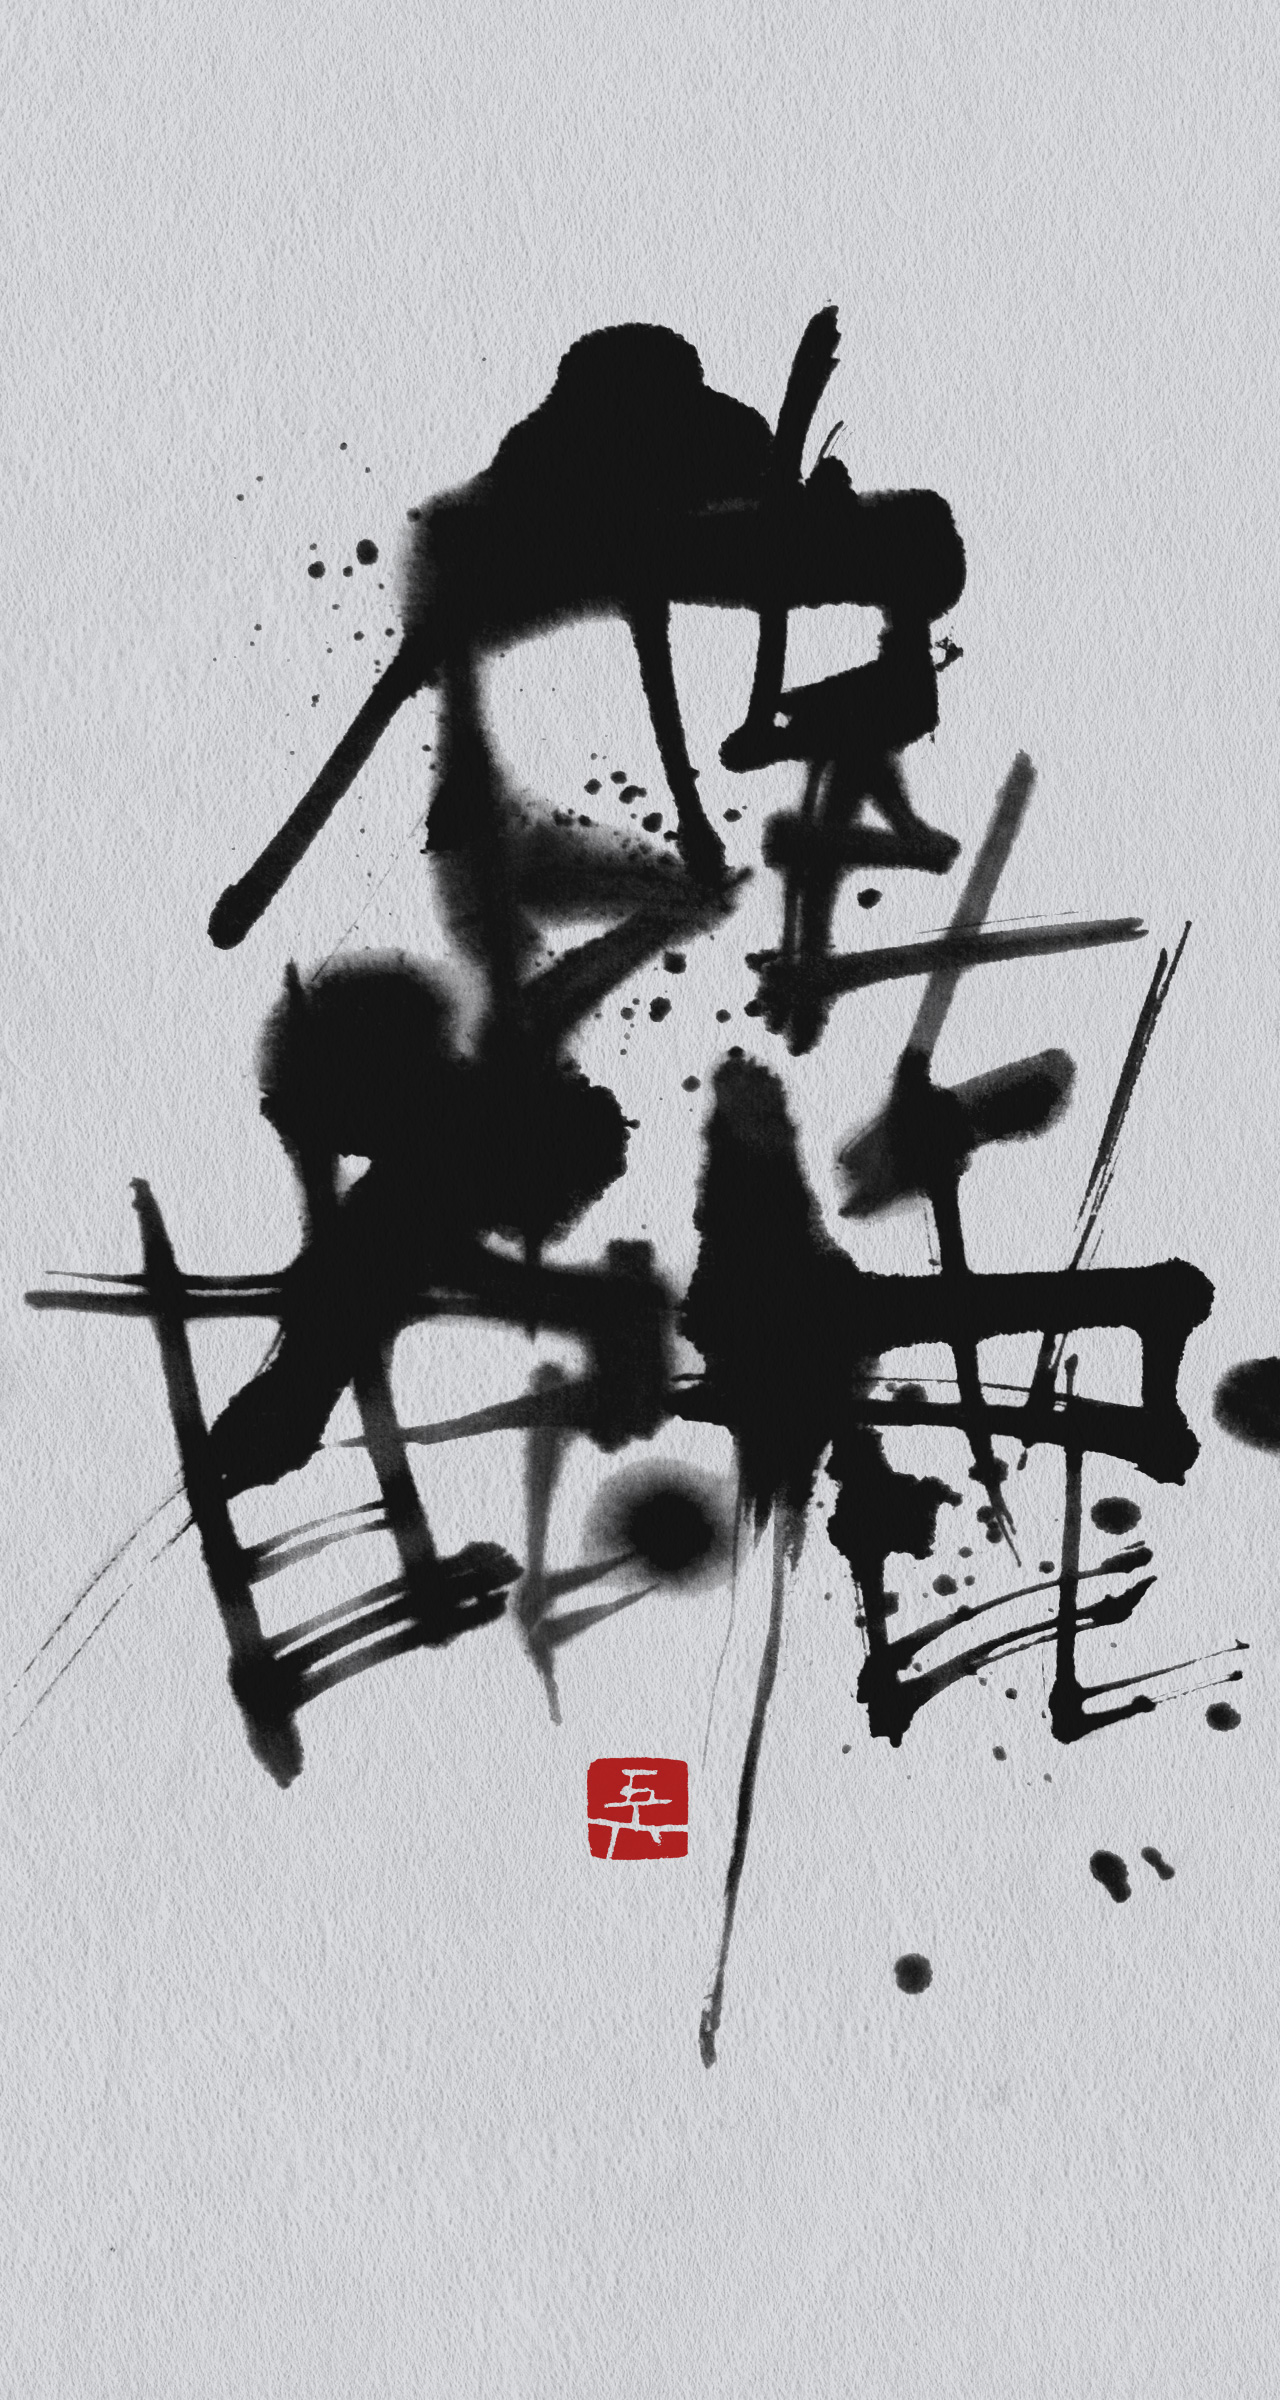 麤 SO Rough 言葉 書道作品 japaneseart japanesecalligraphy